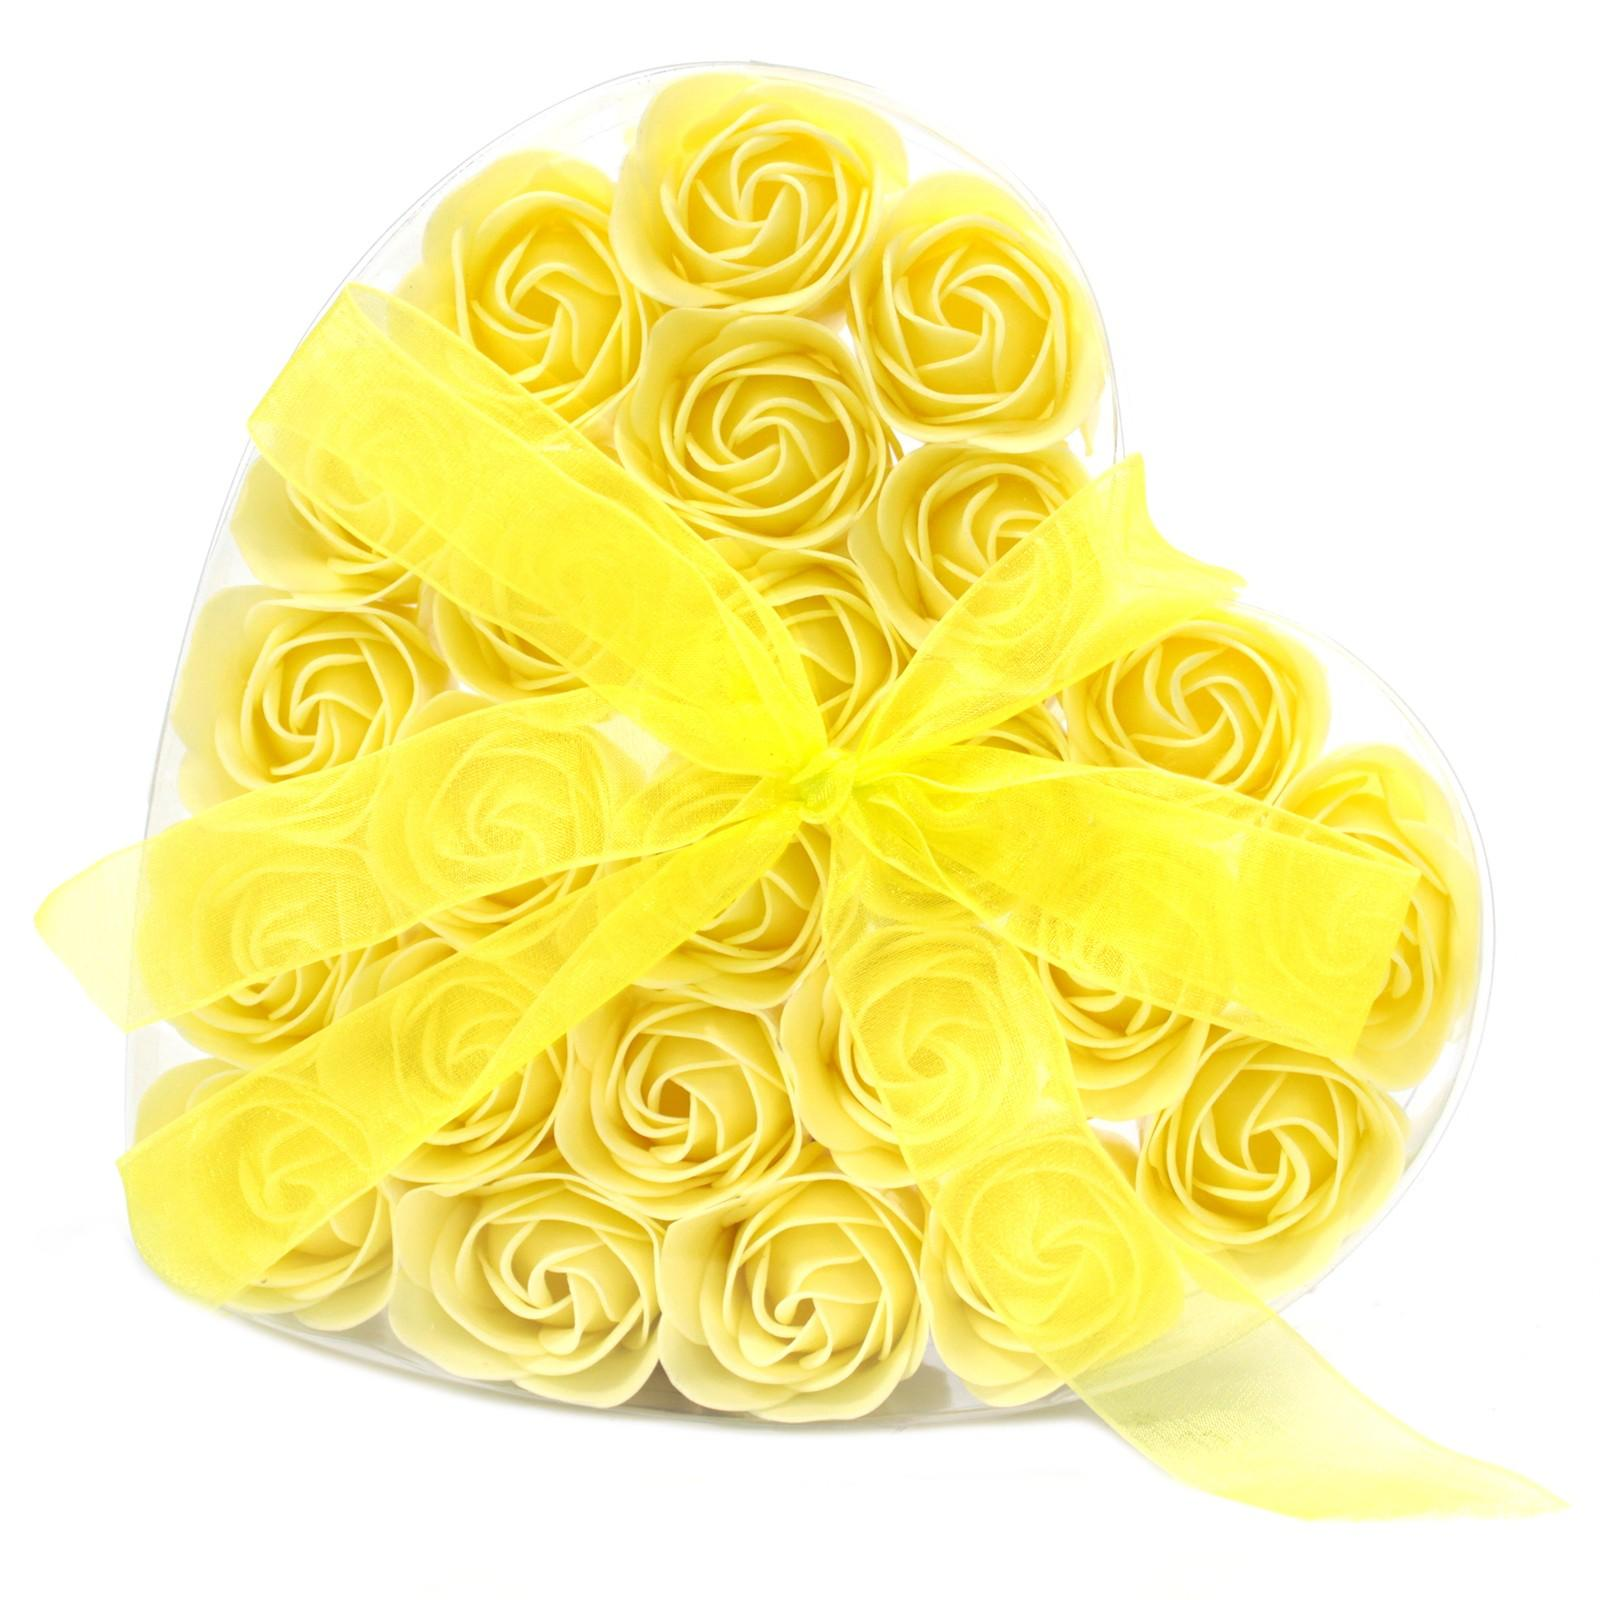 Yellow confetti soap rose gift box